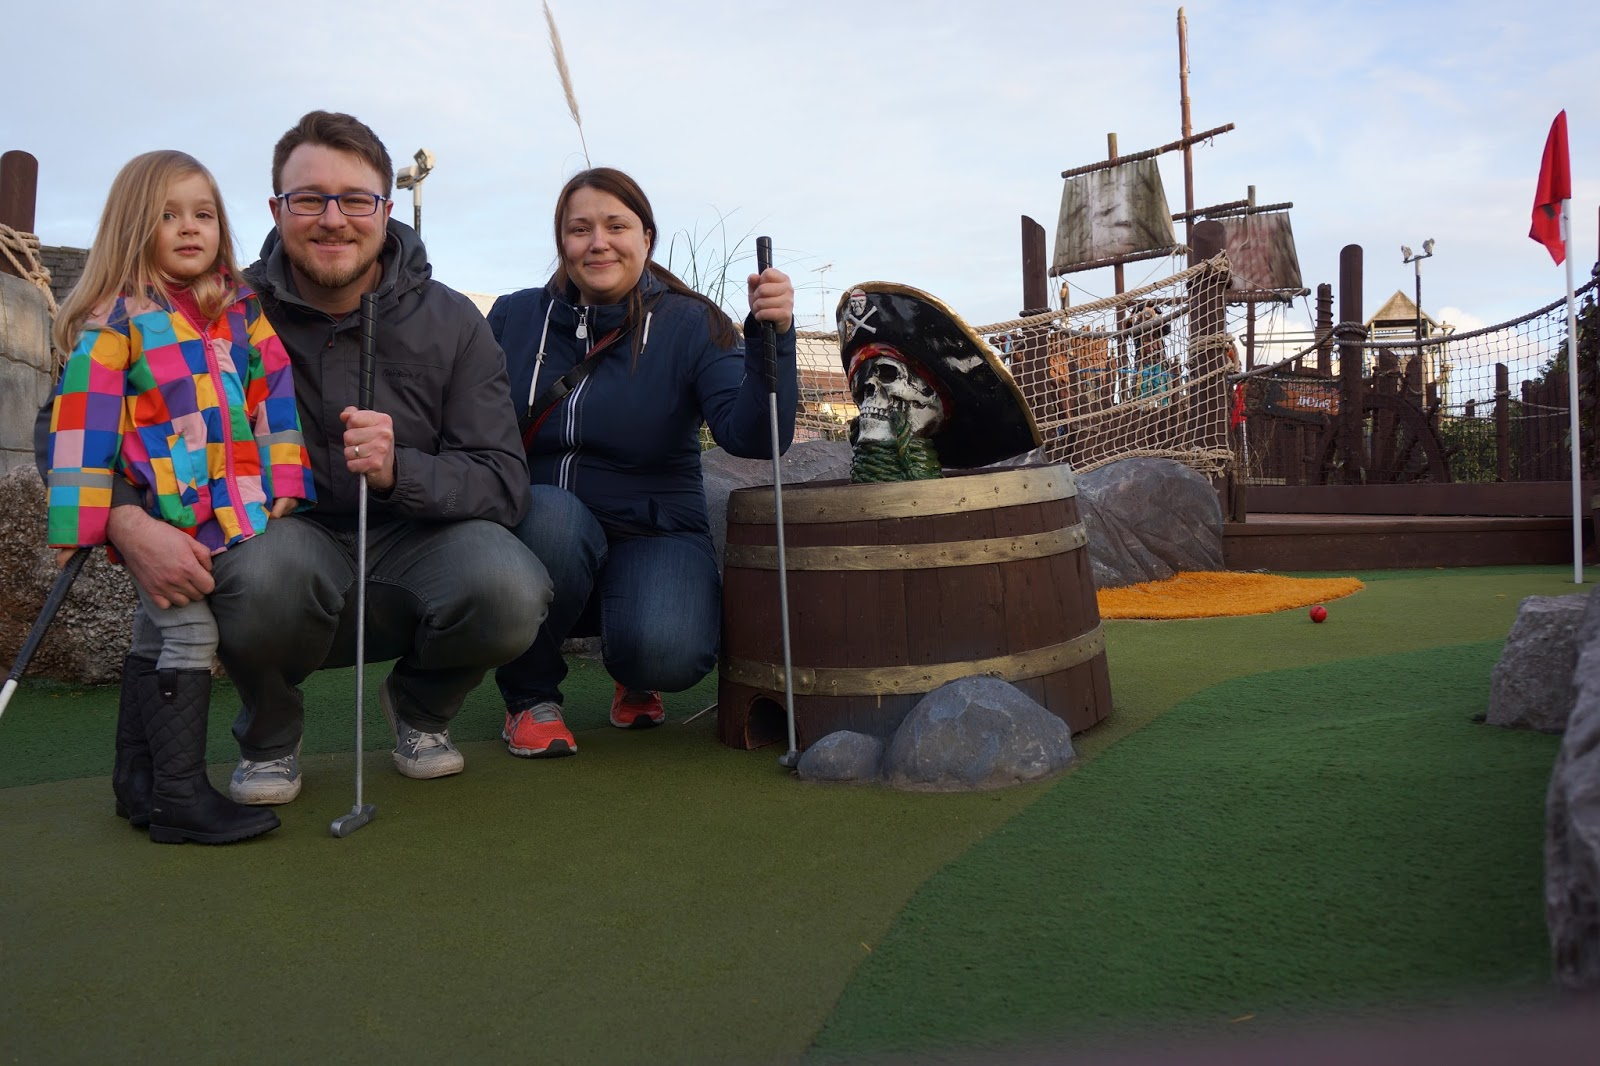 family portrait at mini golf range at butlins